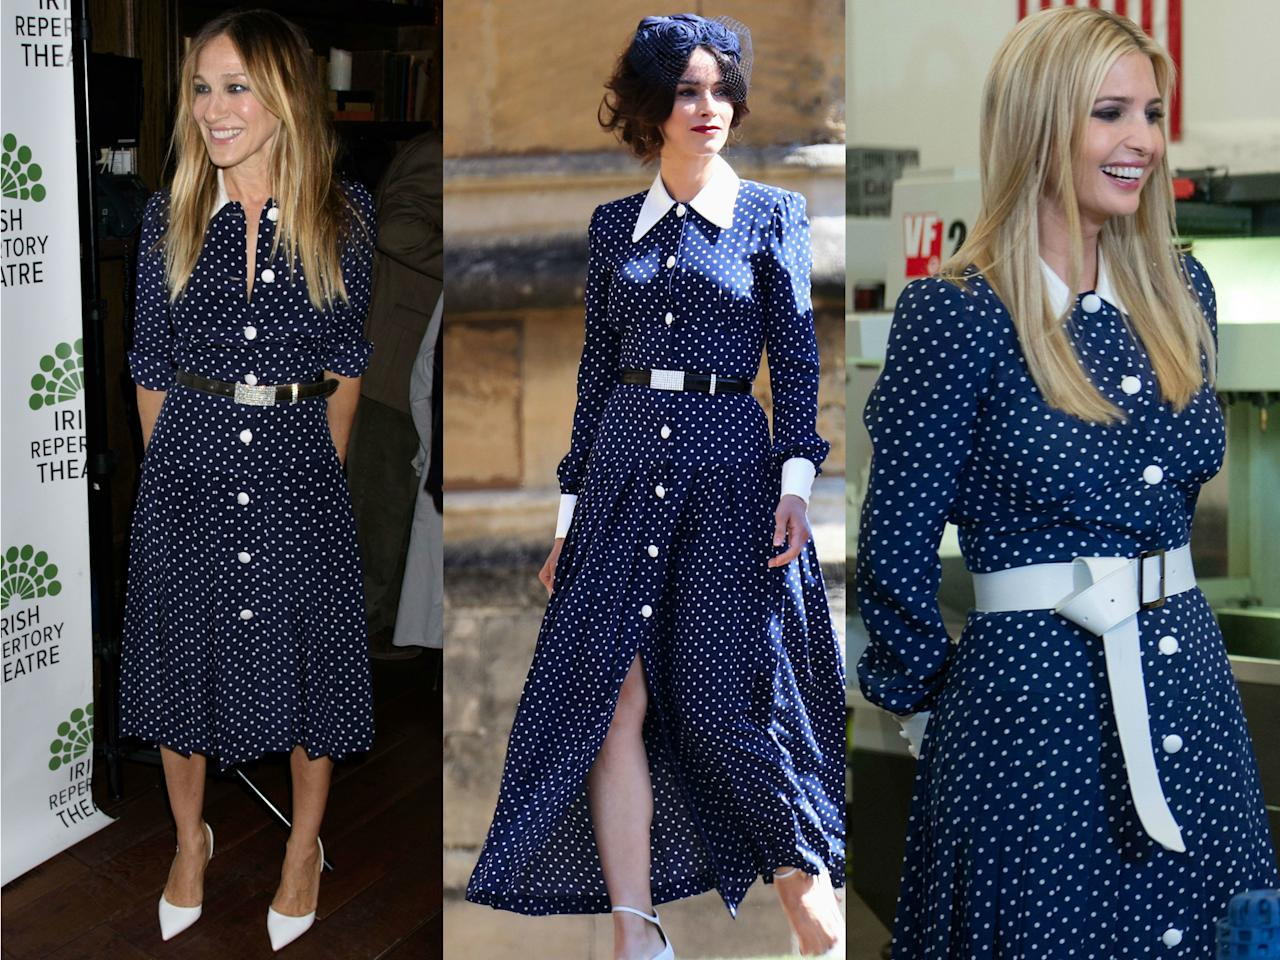 """<p>Alessandra Rich might just have designed one of 2018's most visible dresses: Sarah Jessica Parker paired it with white pumps at the afterparty for husband Matthew Broderick's play <em>The Seafarer</em> in April 2018, and then Abigail Spencer dressed it up for Meghan Markle and Prince Harry's royal wedding in May. Ivanka Trump added a white belt and showed off the design when she visited a steel factory with her father in July 2018.</p> <p>And they're not the only ones who love that contrasting collar: Kate Middleton posed for <a href=""""https://www.glamour.com/story/the-royal-family-just-got-together-for-a-surprise-photo-shoot?mbid=synd_yahoo_rss"""">royal family photos</a> at Prince Charles' seventieth birthday in the dress too.</p>"""